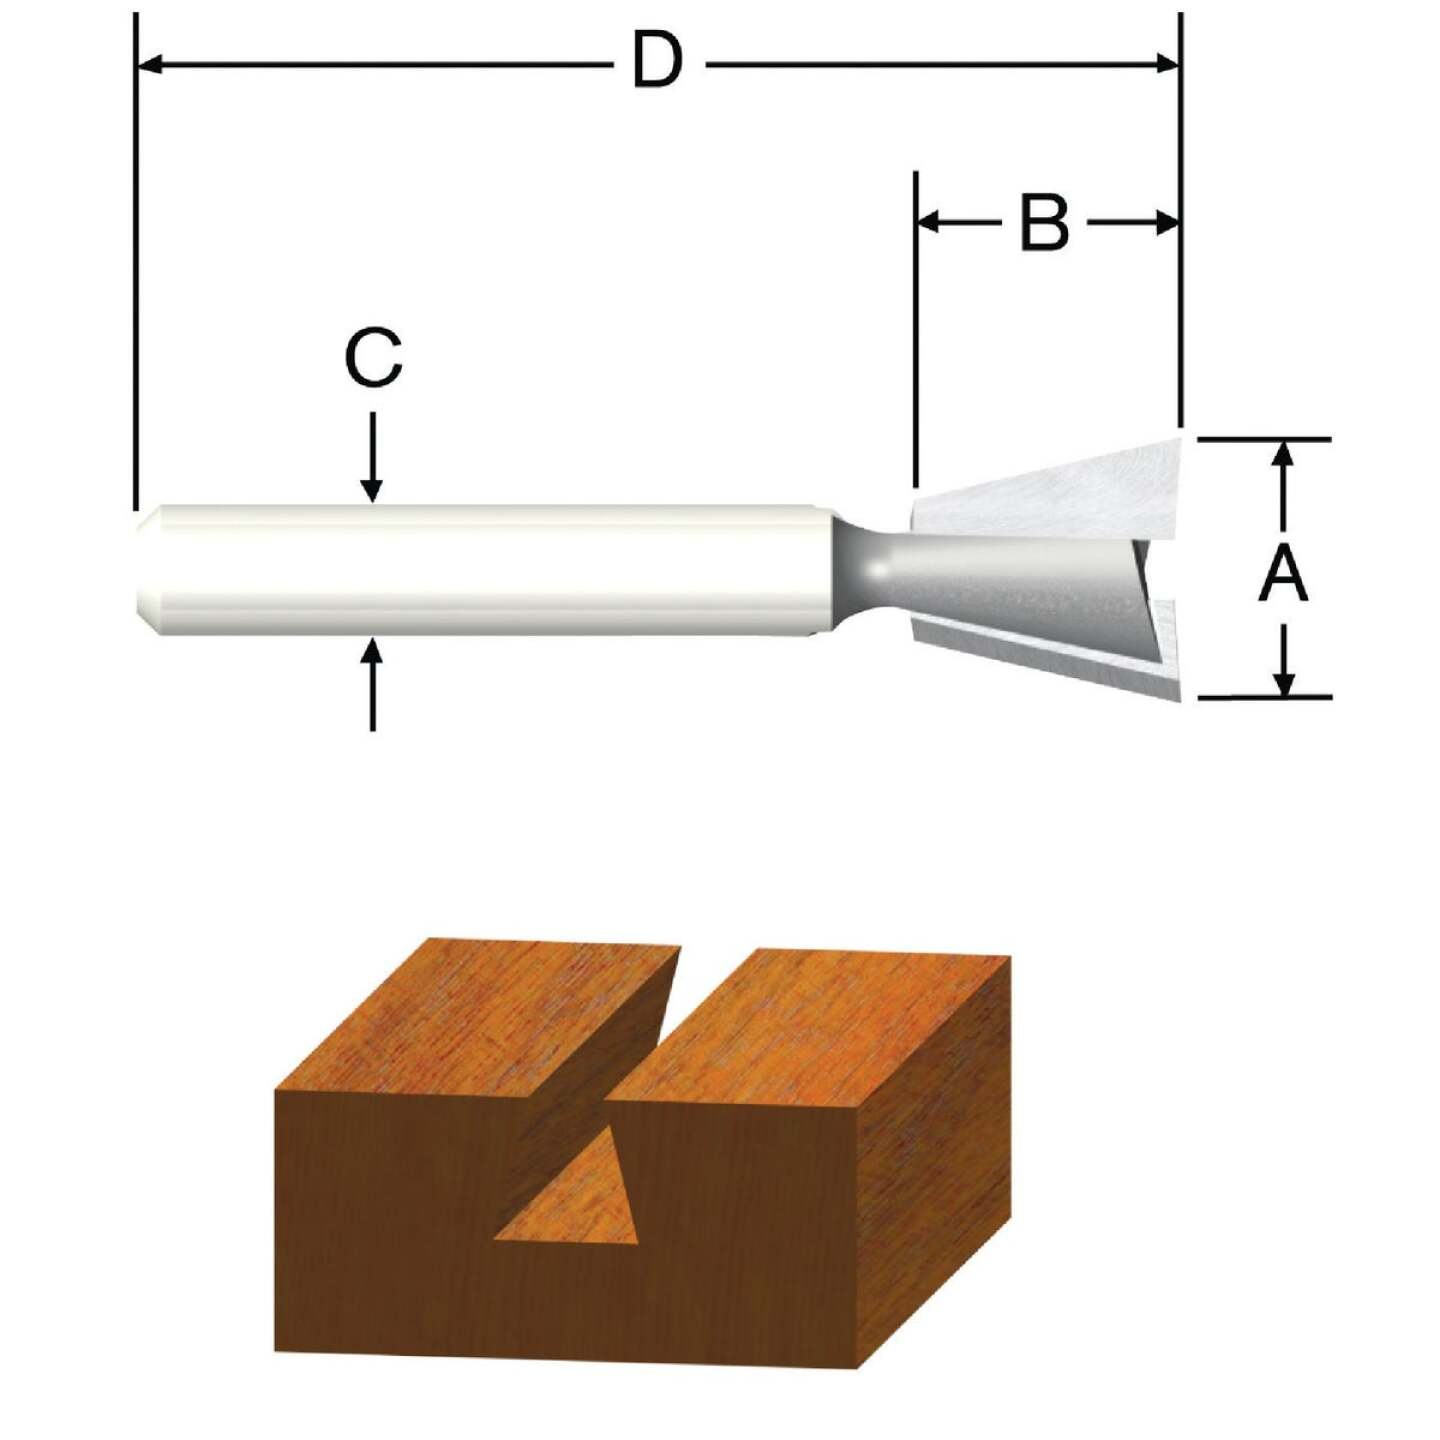 Vermont American Carbide Dovetail 3/8 In. Dovetail Bit Image 1